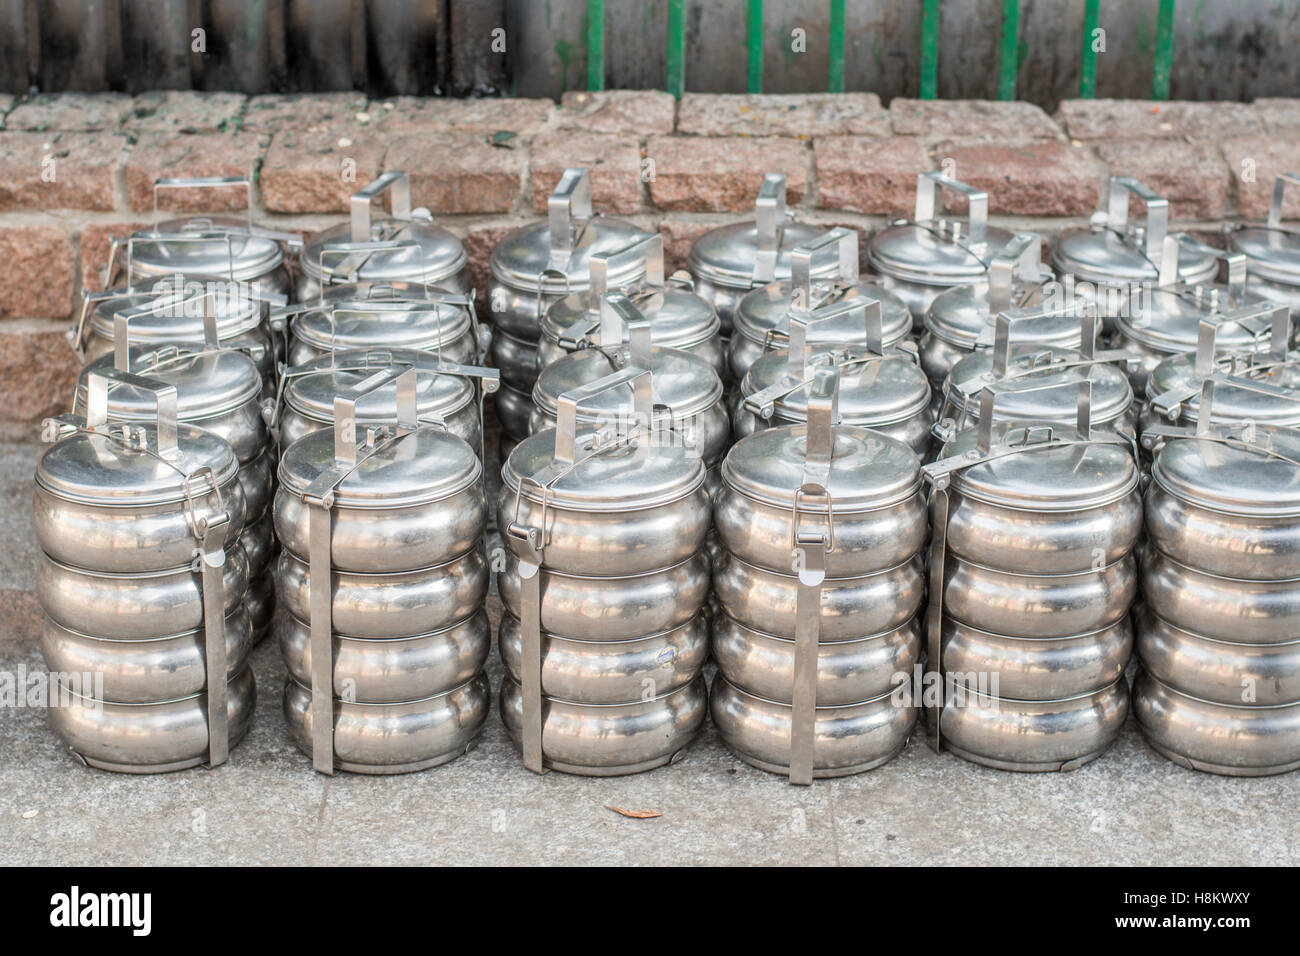 Cairo, Egypt. Close up of silver stacked lunch pales for sale in the outdoor bazaar/ flea market Khan el-Khalili Stock Photo